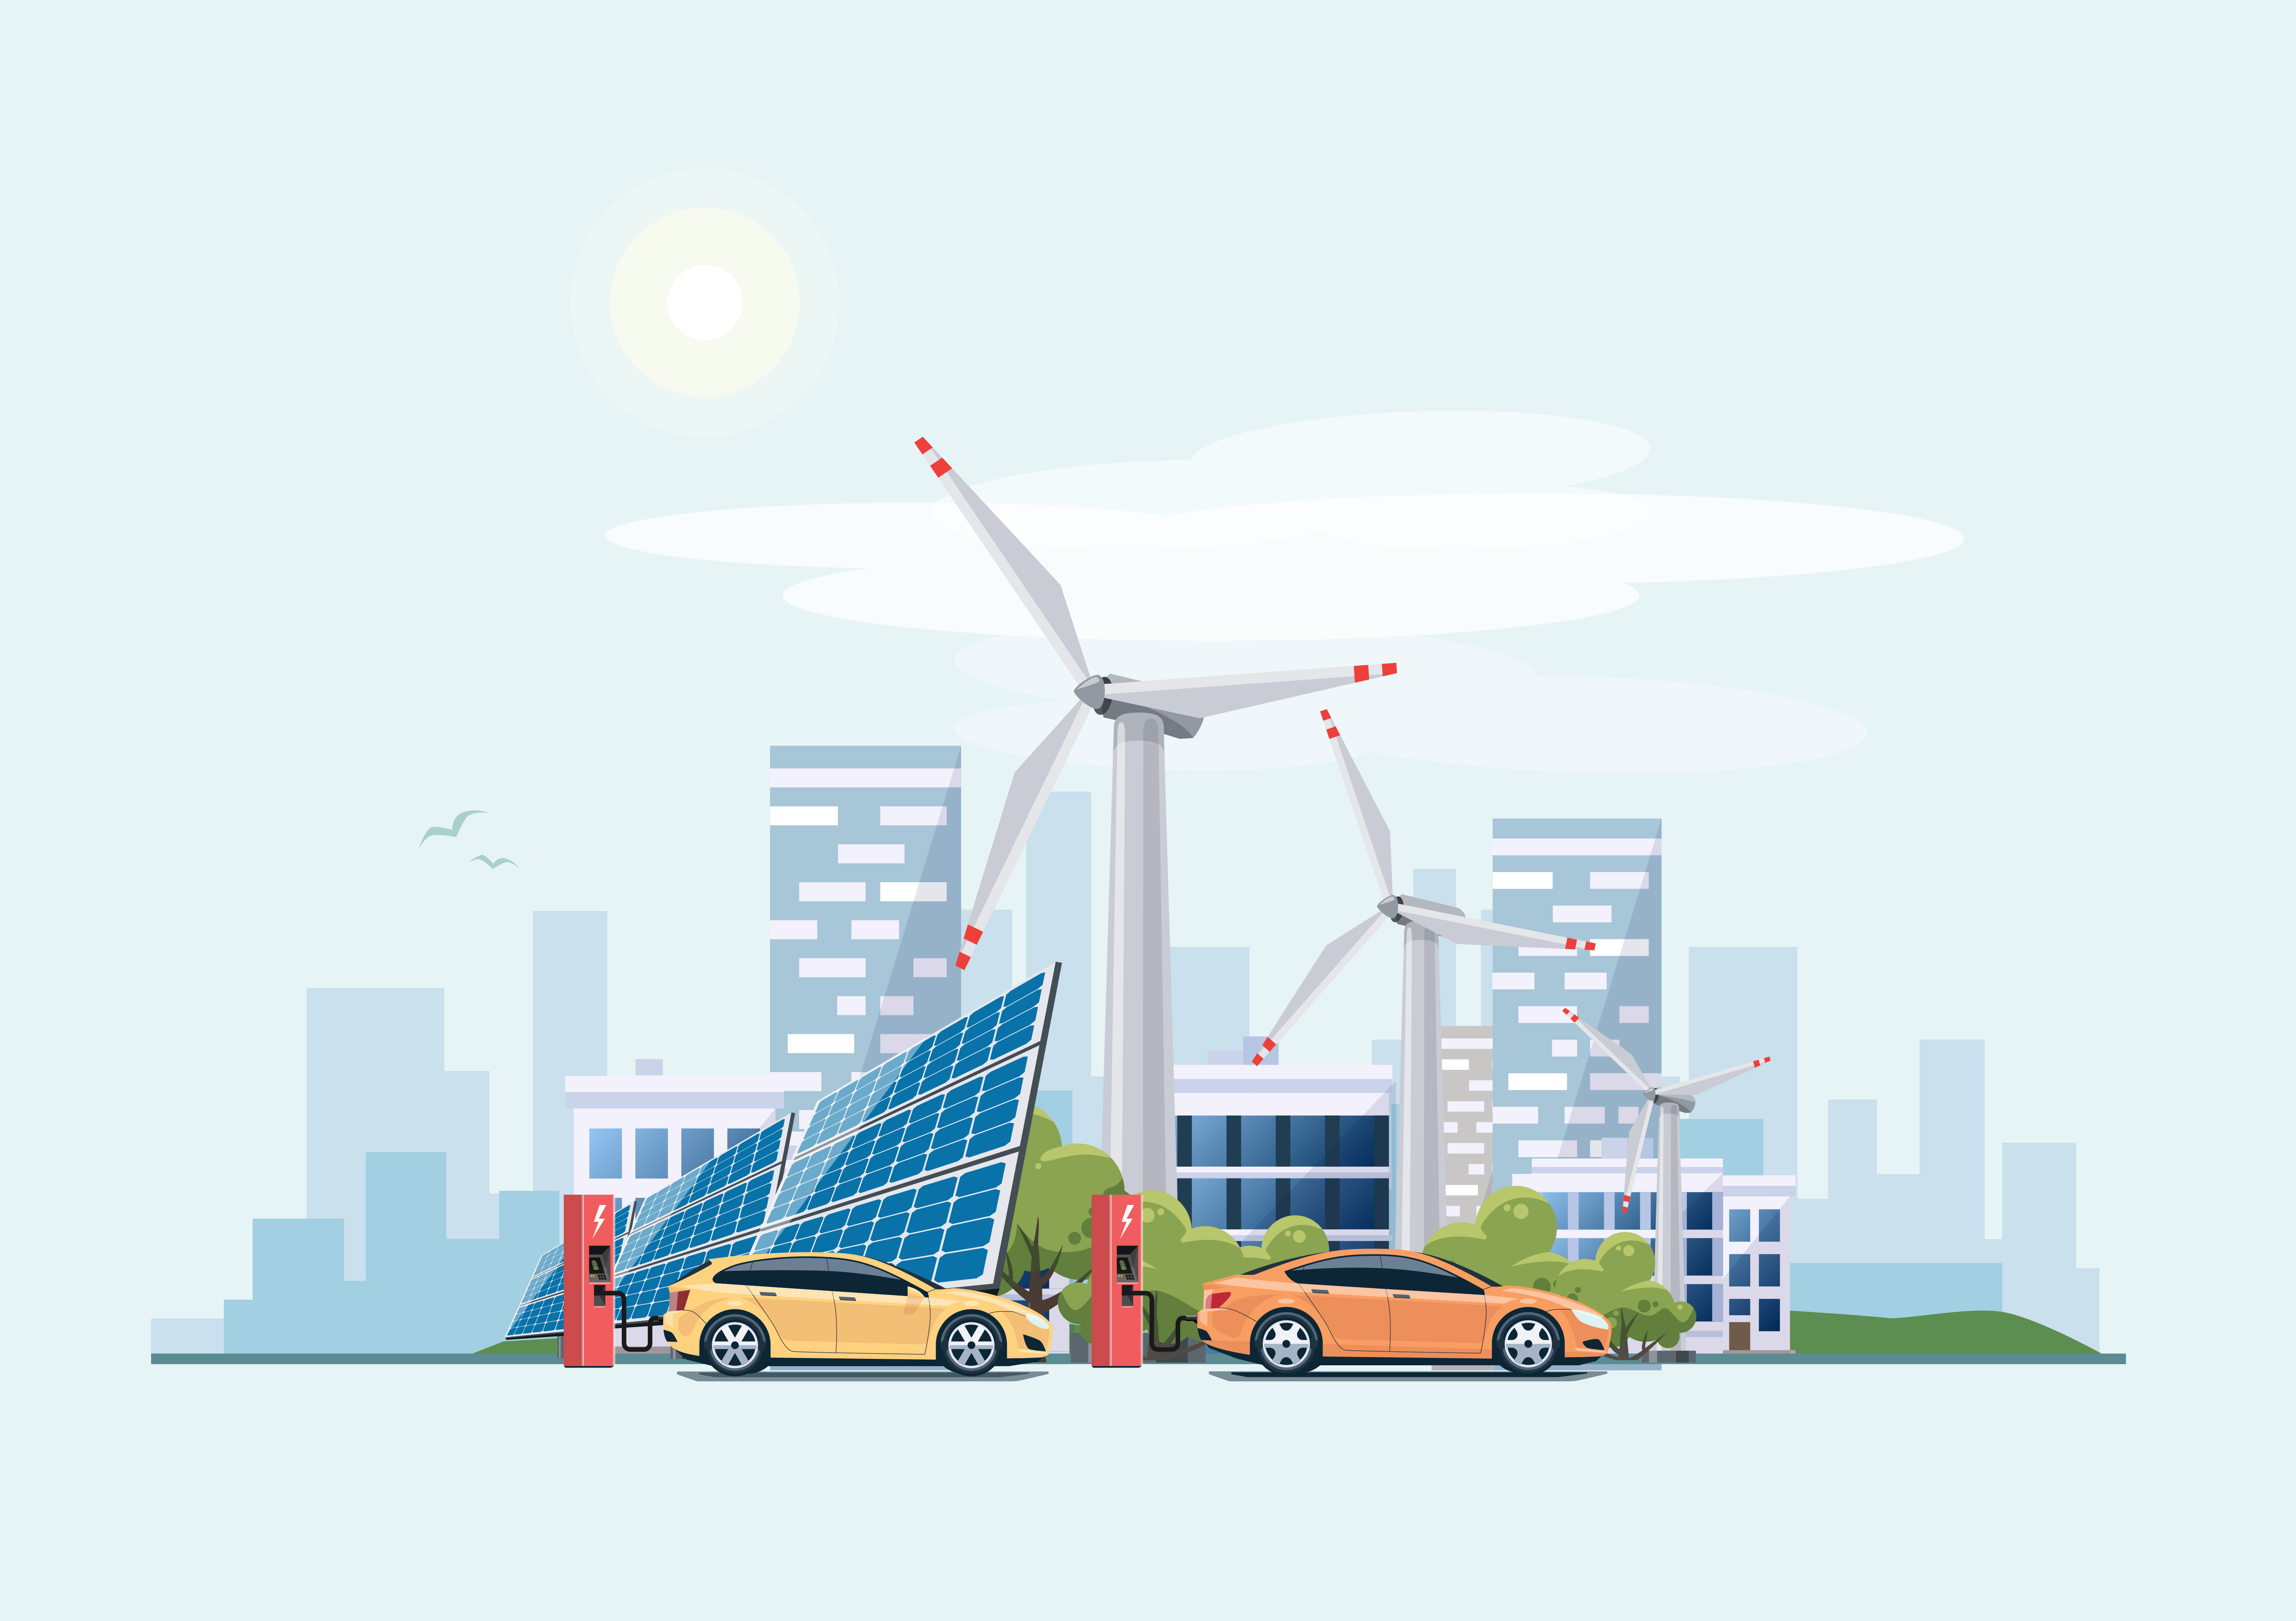 Electric cars charging at the charger station in front of the solar panels and wind turbines. City building skyline in the blue background. Eco green city theme.